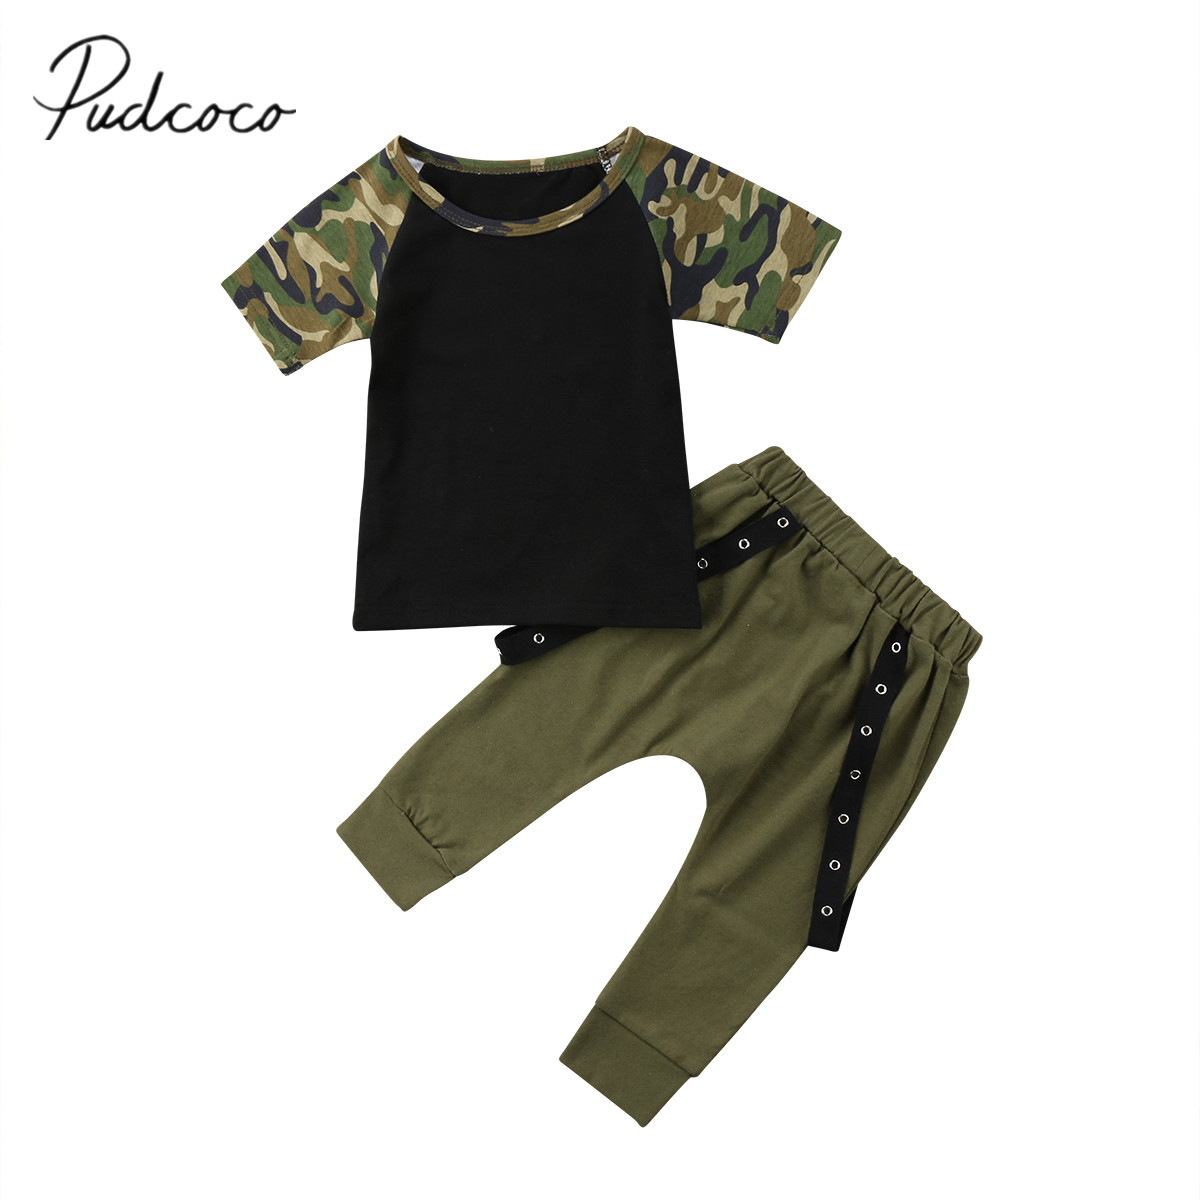 2018 Brand New Toddler Infant Kid Baby Boy Cotton Clothes Tops T Shirts Camo Tee Harem Pants 2Pcs Outfit Summer Clothes Set 1-6T easy guide to sewing tops and t shirts skirts and pants